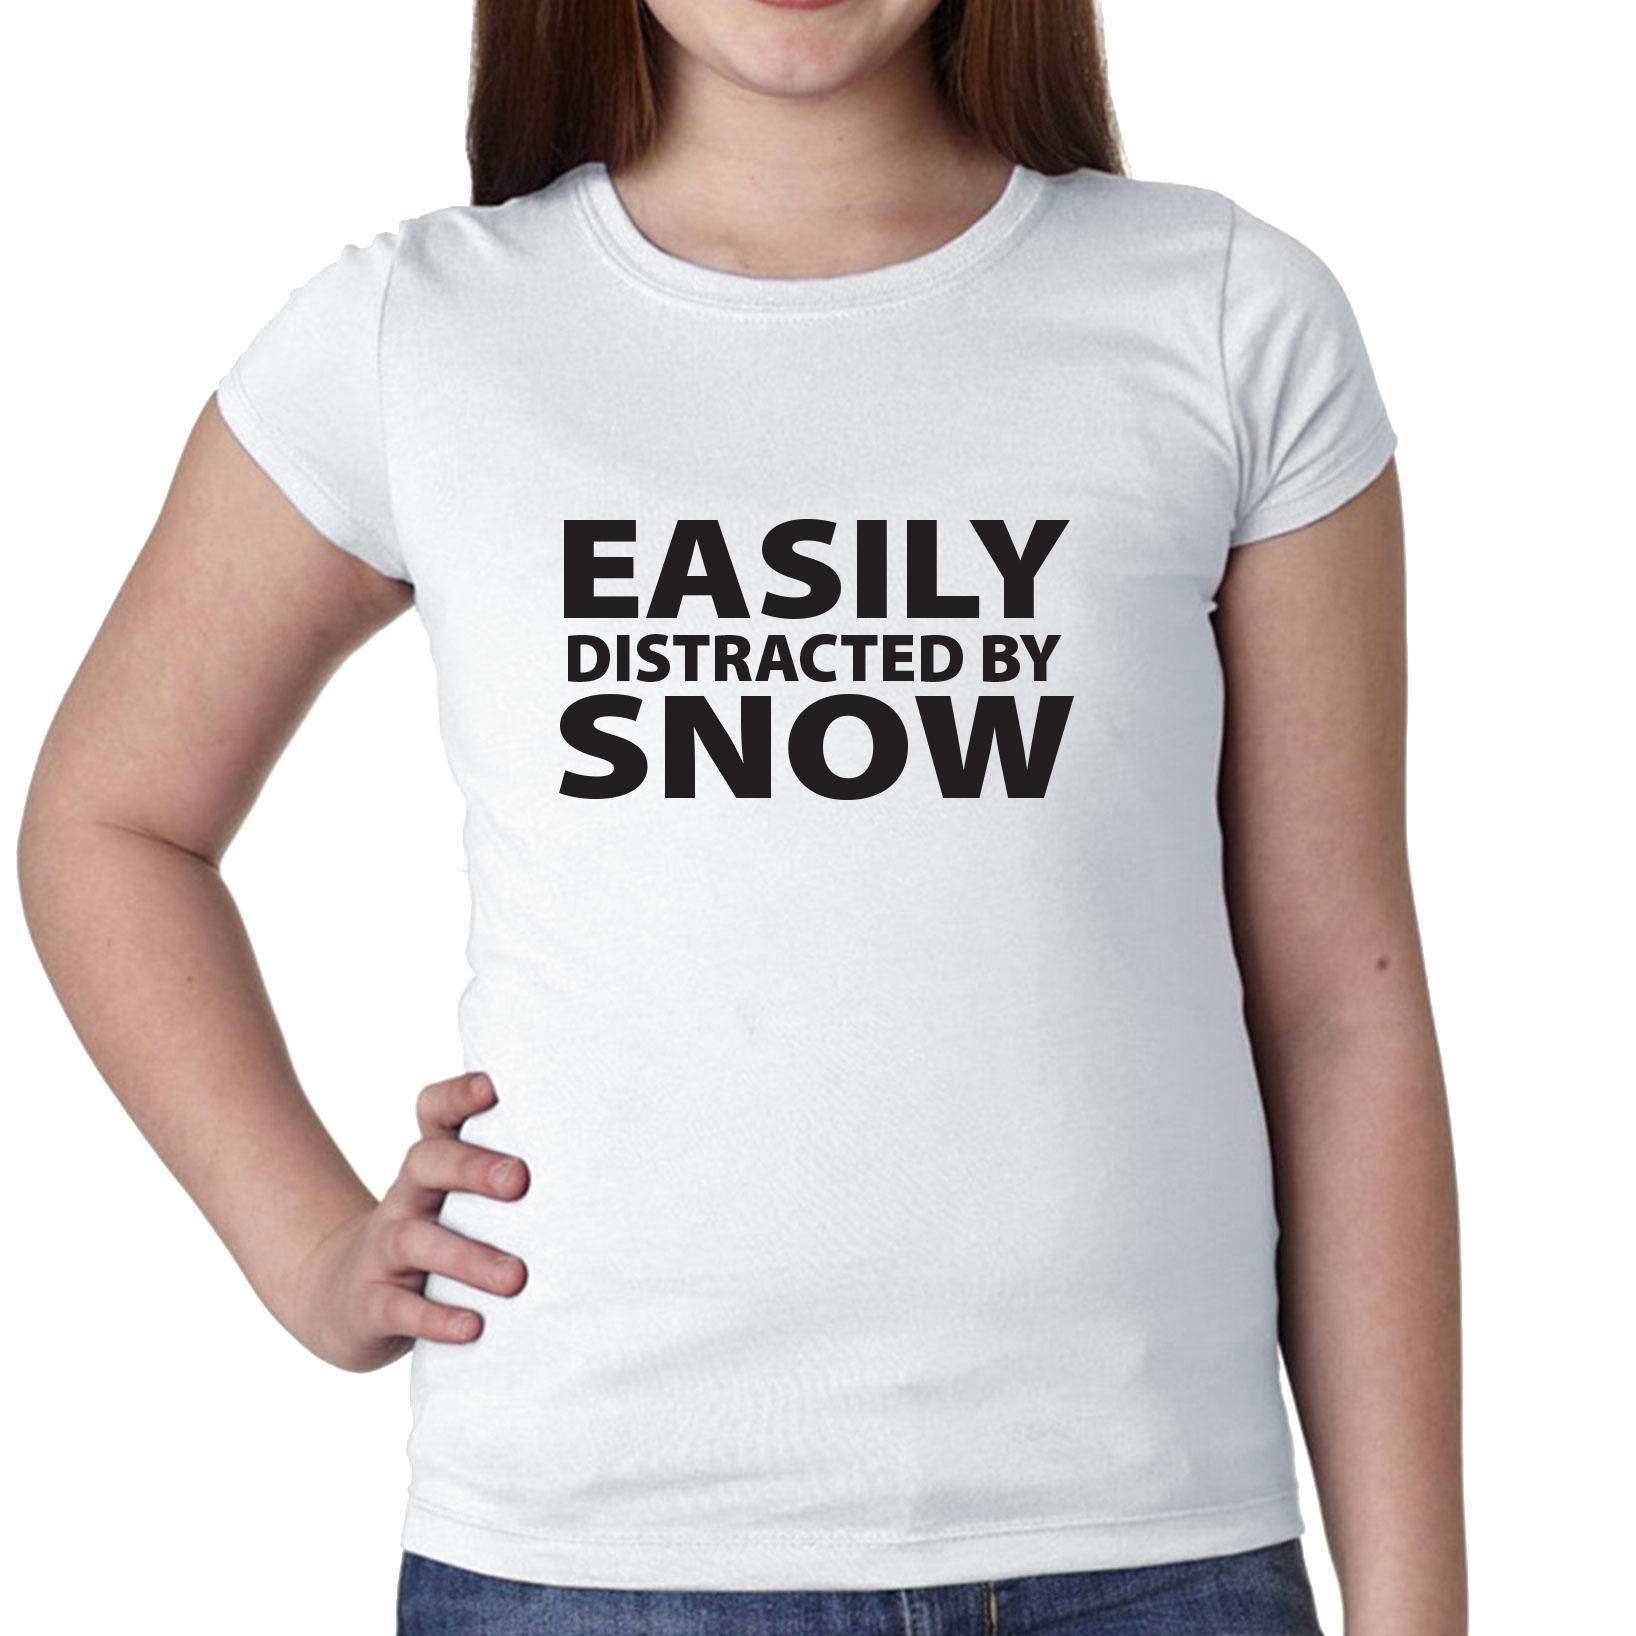 Easily Distracted By Snow Skiing Snowboarding Girl's Cotton Youth T-Shirt by Hollywood Thread